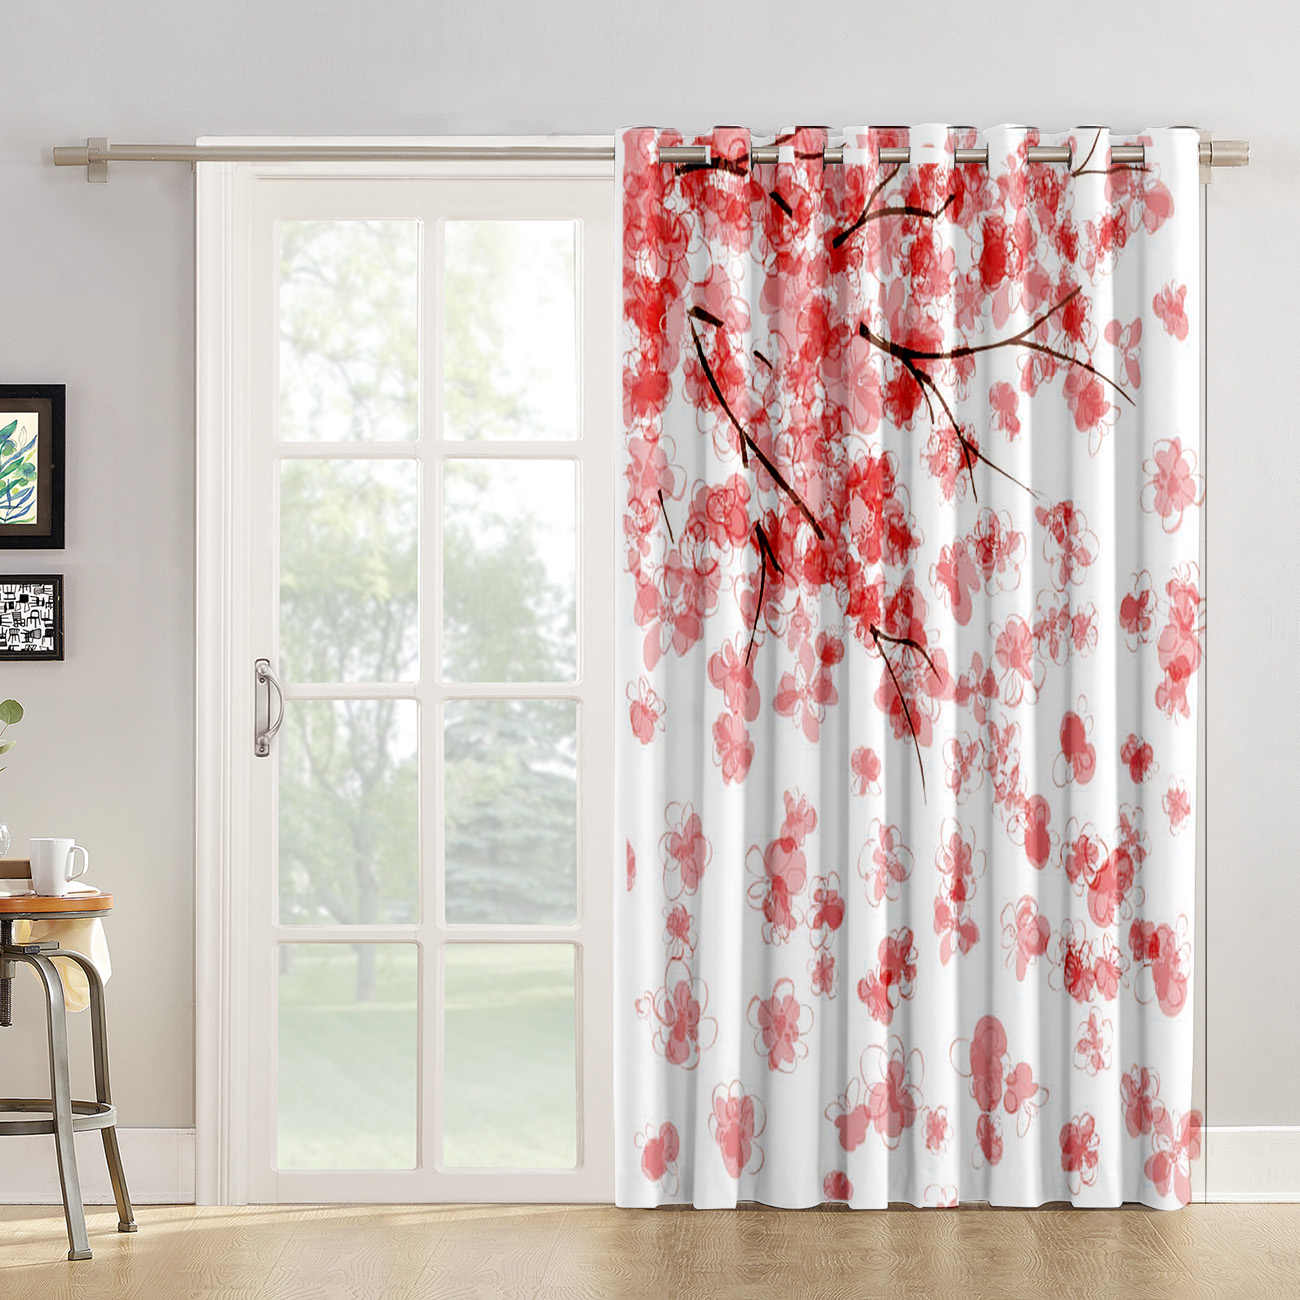 Pink Sakura Cherry Blossoms Living Room Curtains Blackout Kitchen Indoor  Swag Curtain Panels With Grommets Curtains And Drapes